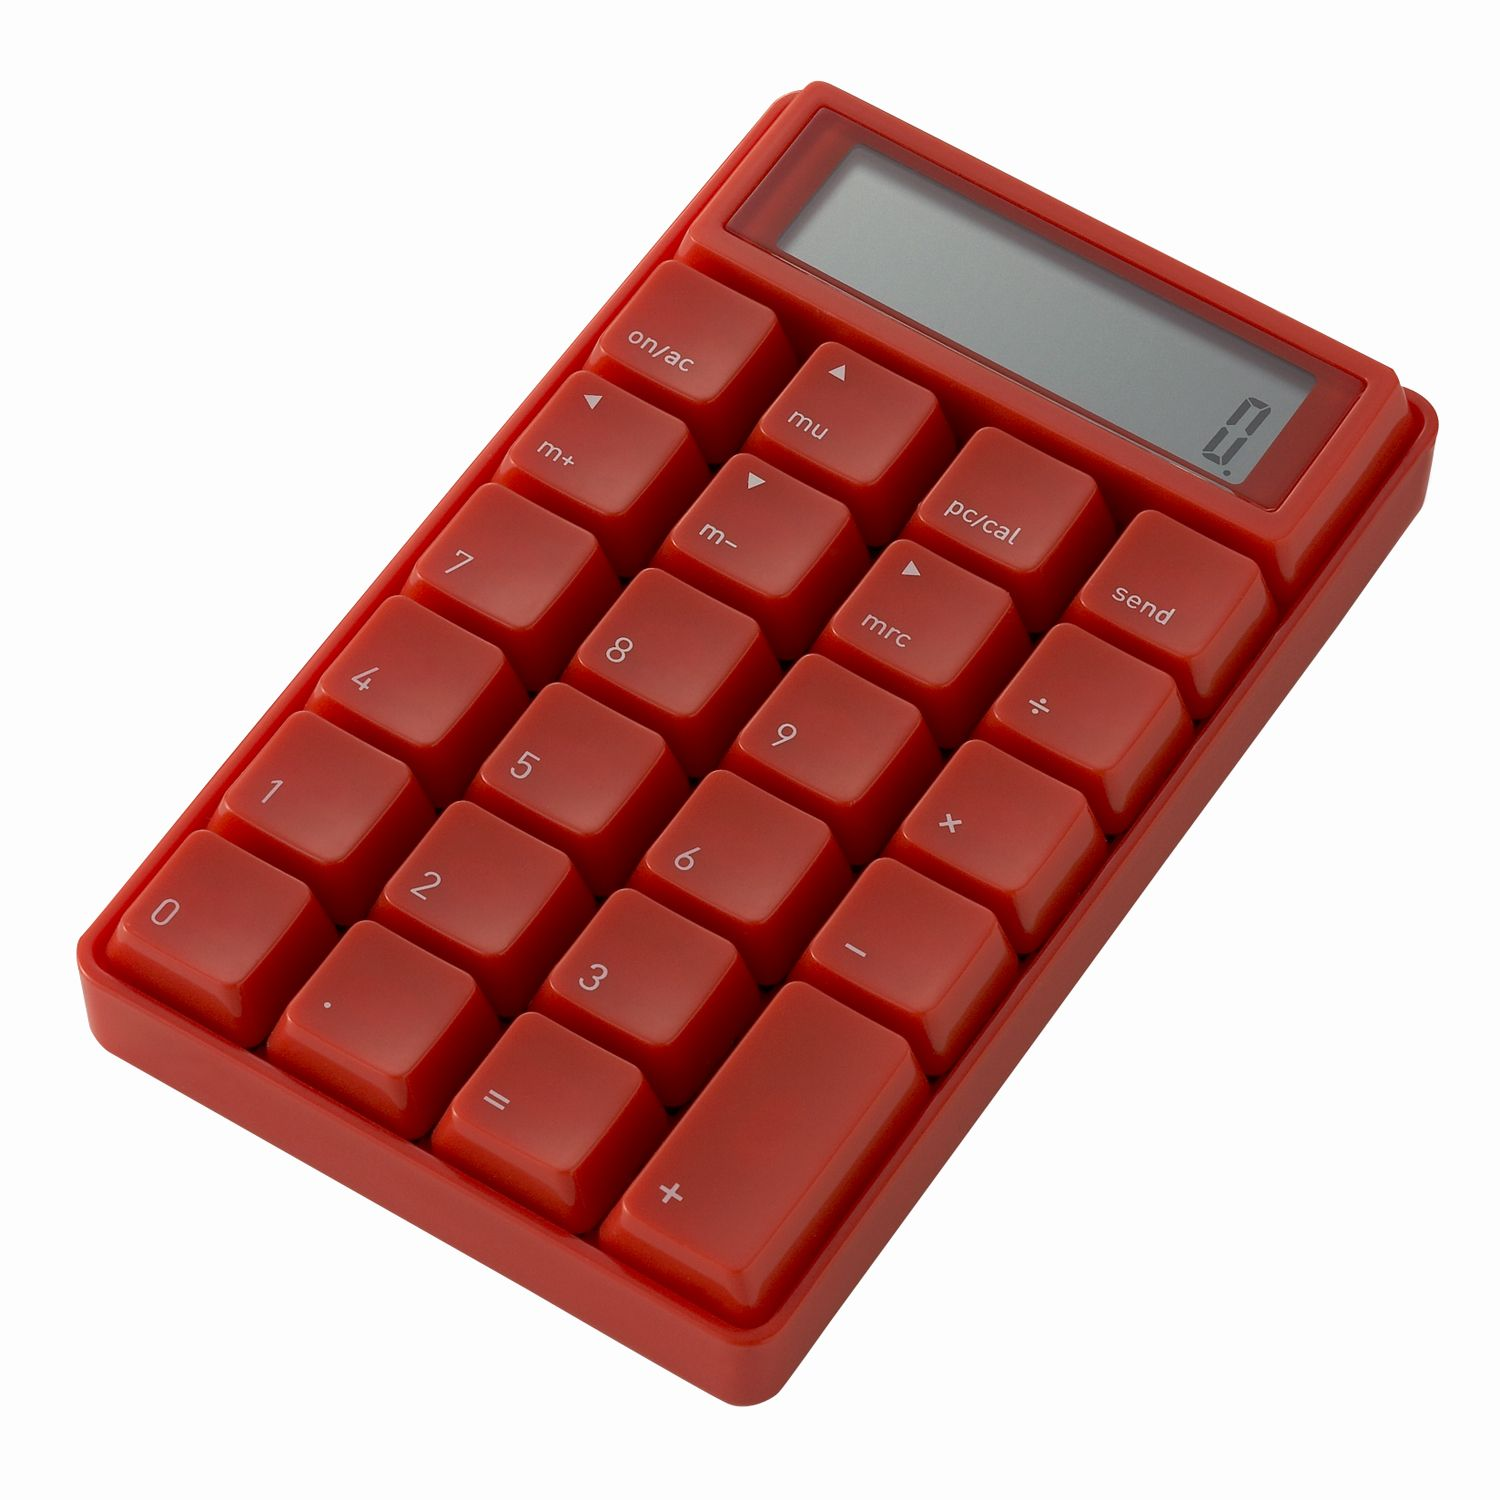 10 Key Calculator Yes Please With Images Cool Things To Buy 10 Things Key